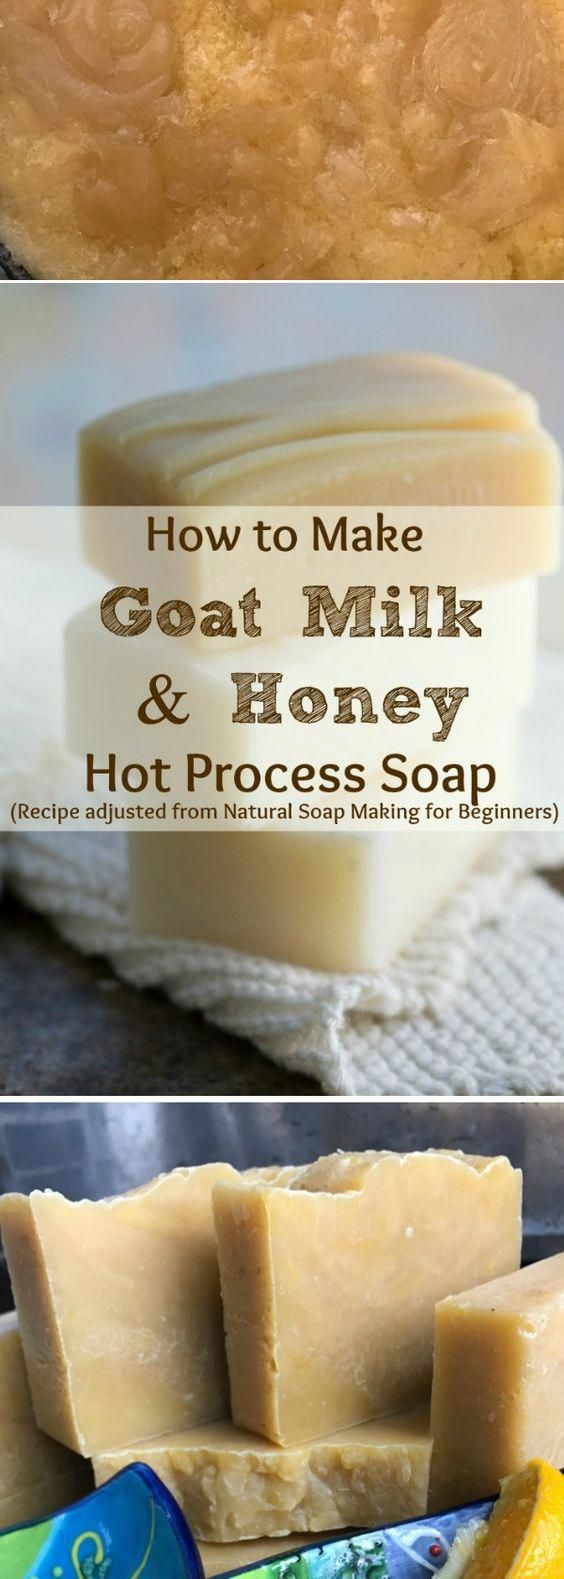 How To Make Goat's Milk & Honey Hot Process Soap (A Quick & Easy Tutorial & Recipe)   – Soap Ideas